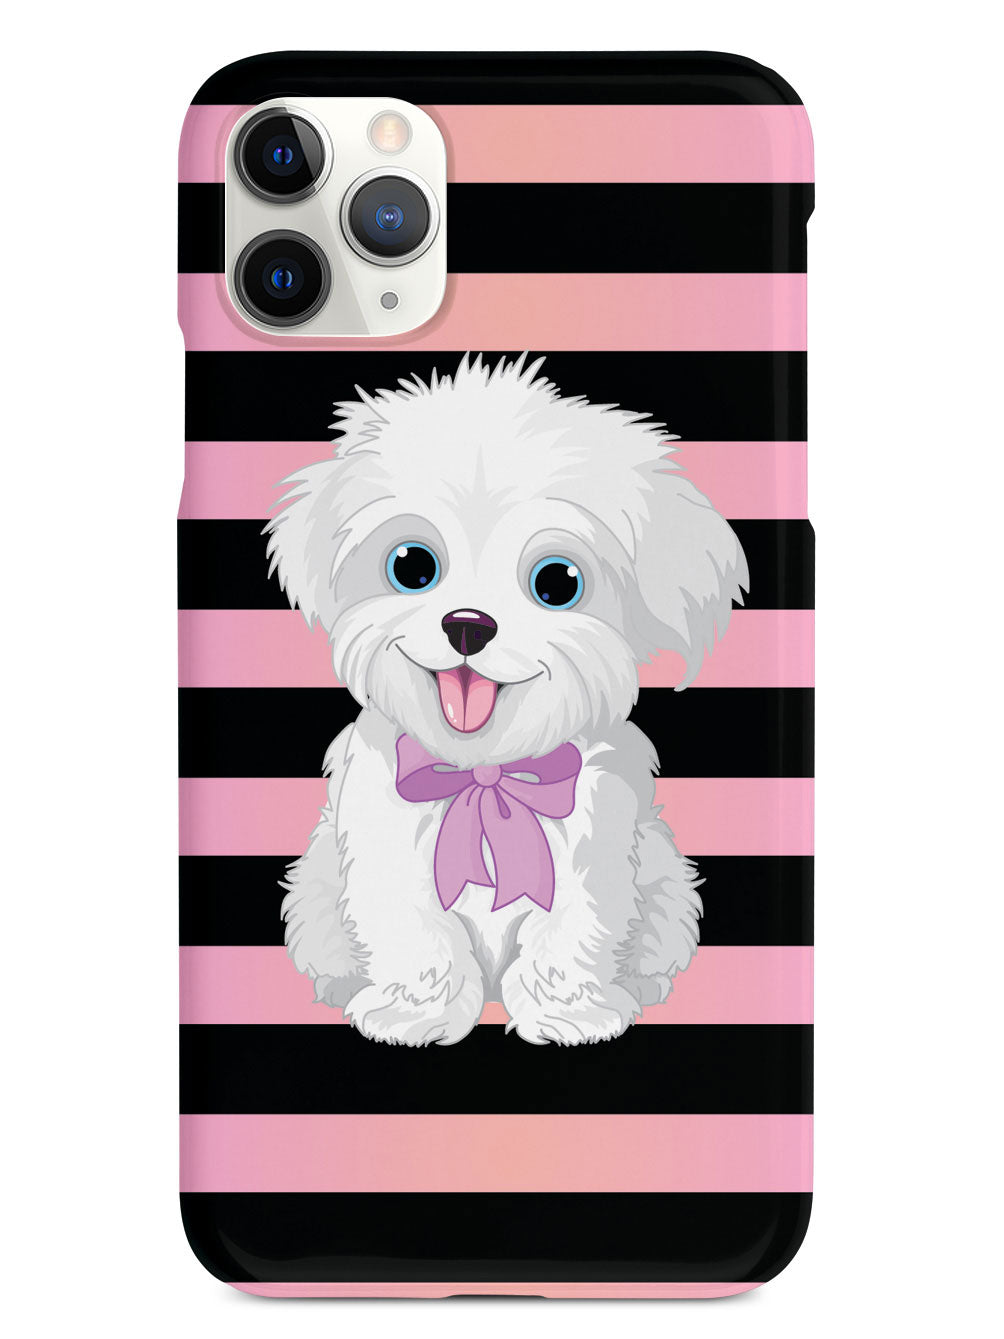 Cute Maltese Puppy Cartoon Black Case Inspiredcases